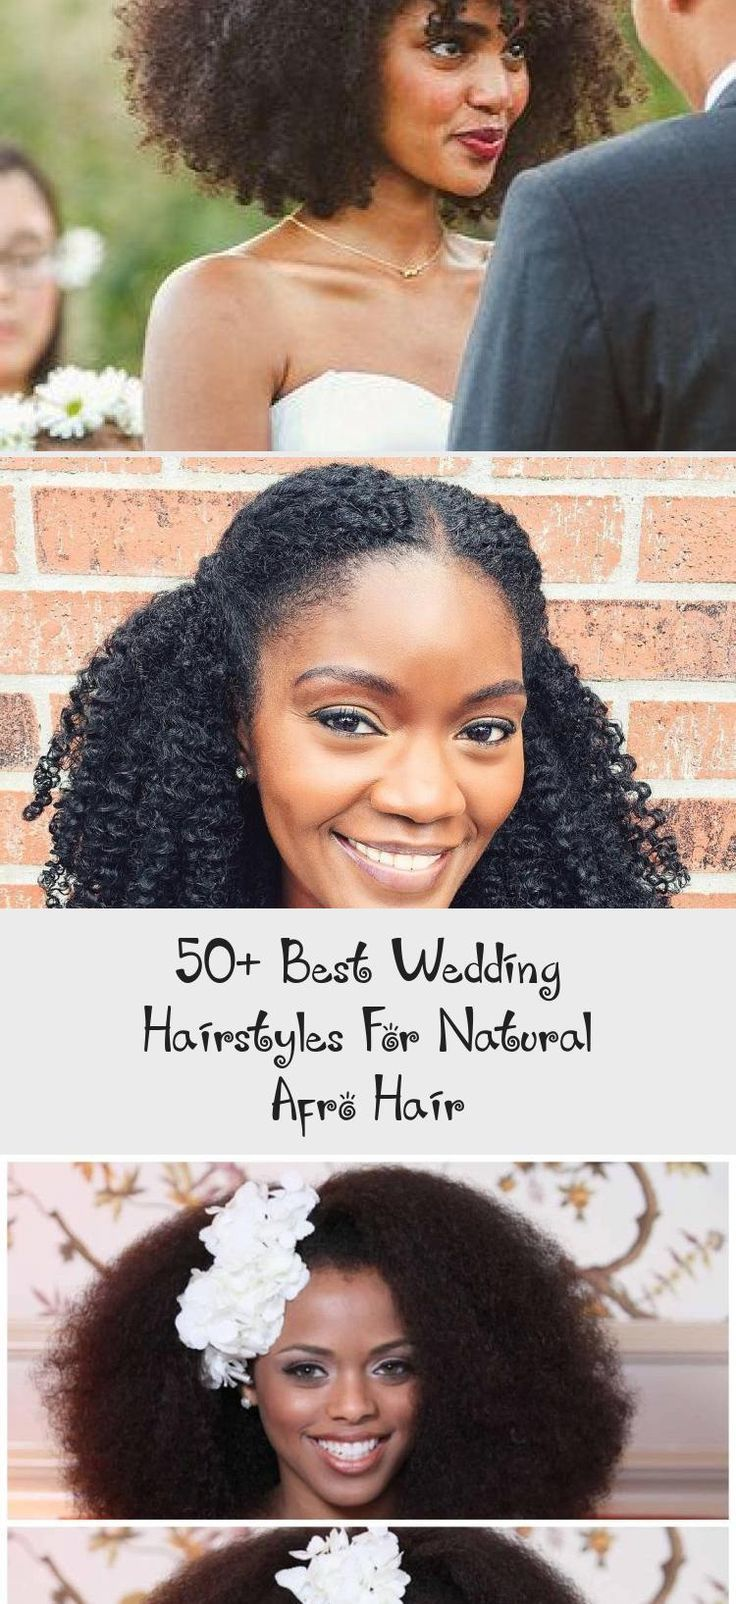 Animal Crossing New Horizons Animal Crossing New Horizons In 2020 Natural Afro Hairstyles Natural Wedding Hairstyles Afro Wedding Hairstyles